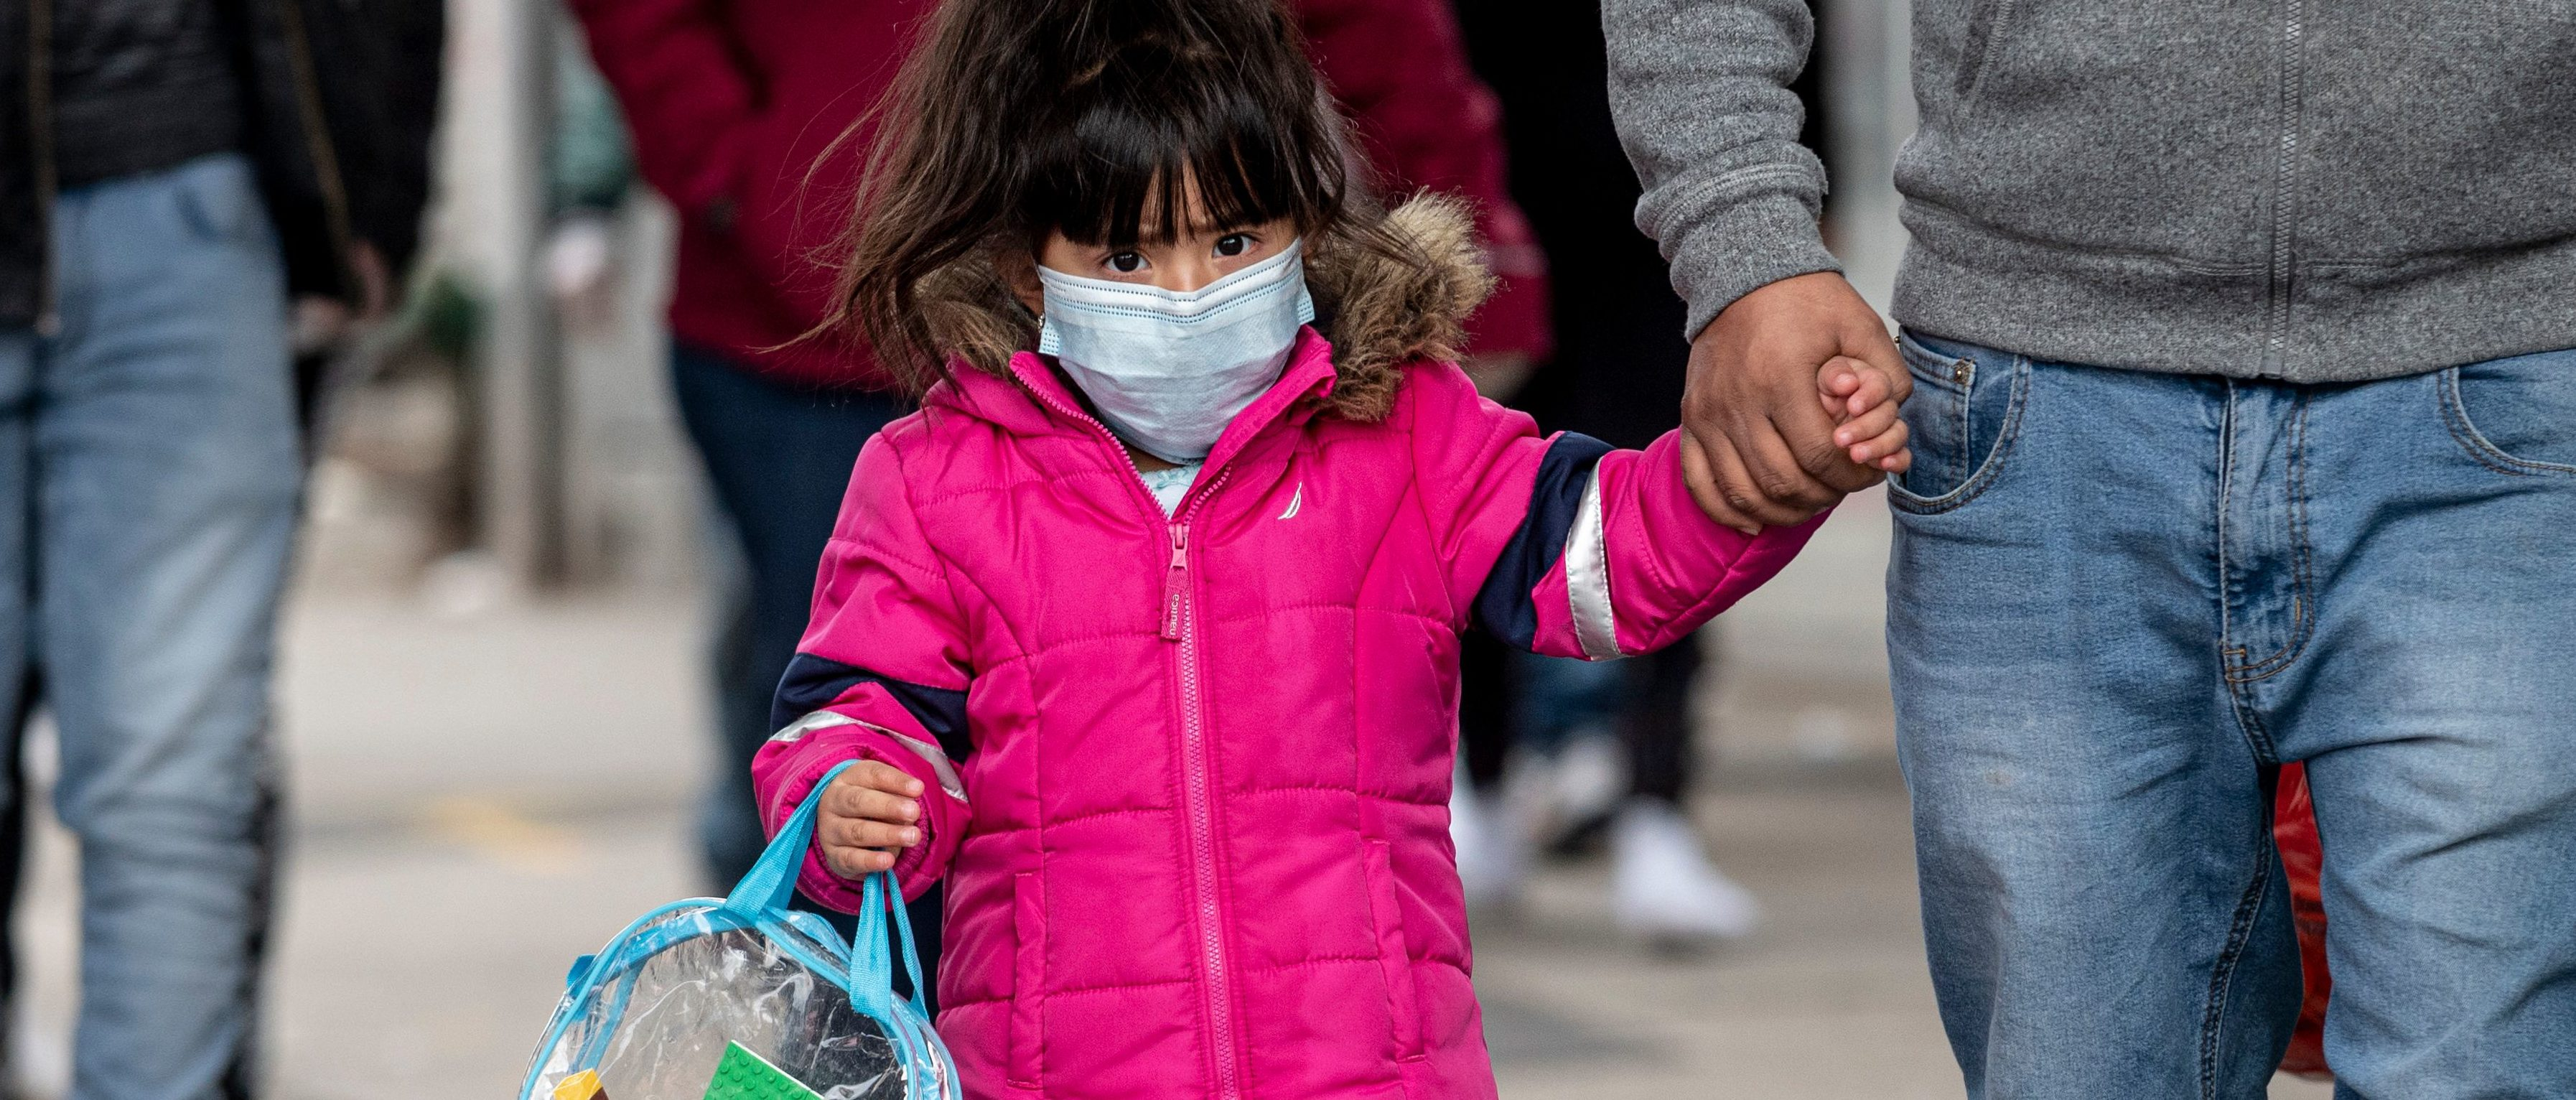 A girl, wearing a mask, walks down a street in the Corona neighborhood of Queens on April 14, 2020 in New York City. - New York will start making tens of thousands of coronavirus test kits a week, its mayor announced Tuesday, as the city looks to boost testing capacity with a view to ending its shutdown. (Photo by Johannes EISELE / AFP) (Photo by JOHANNES EISELE/AFP via Getty Images)